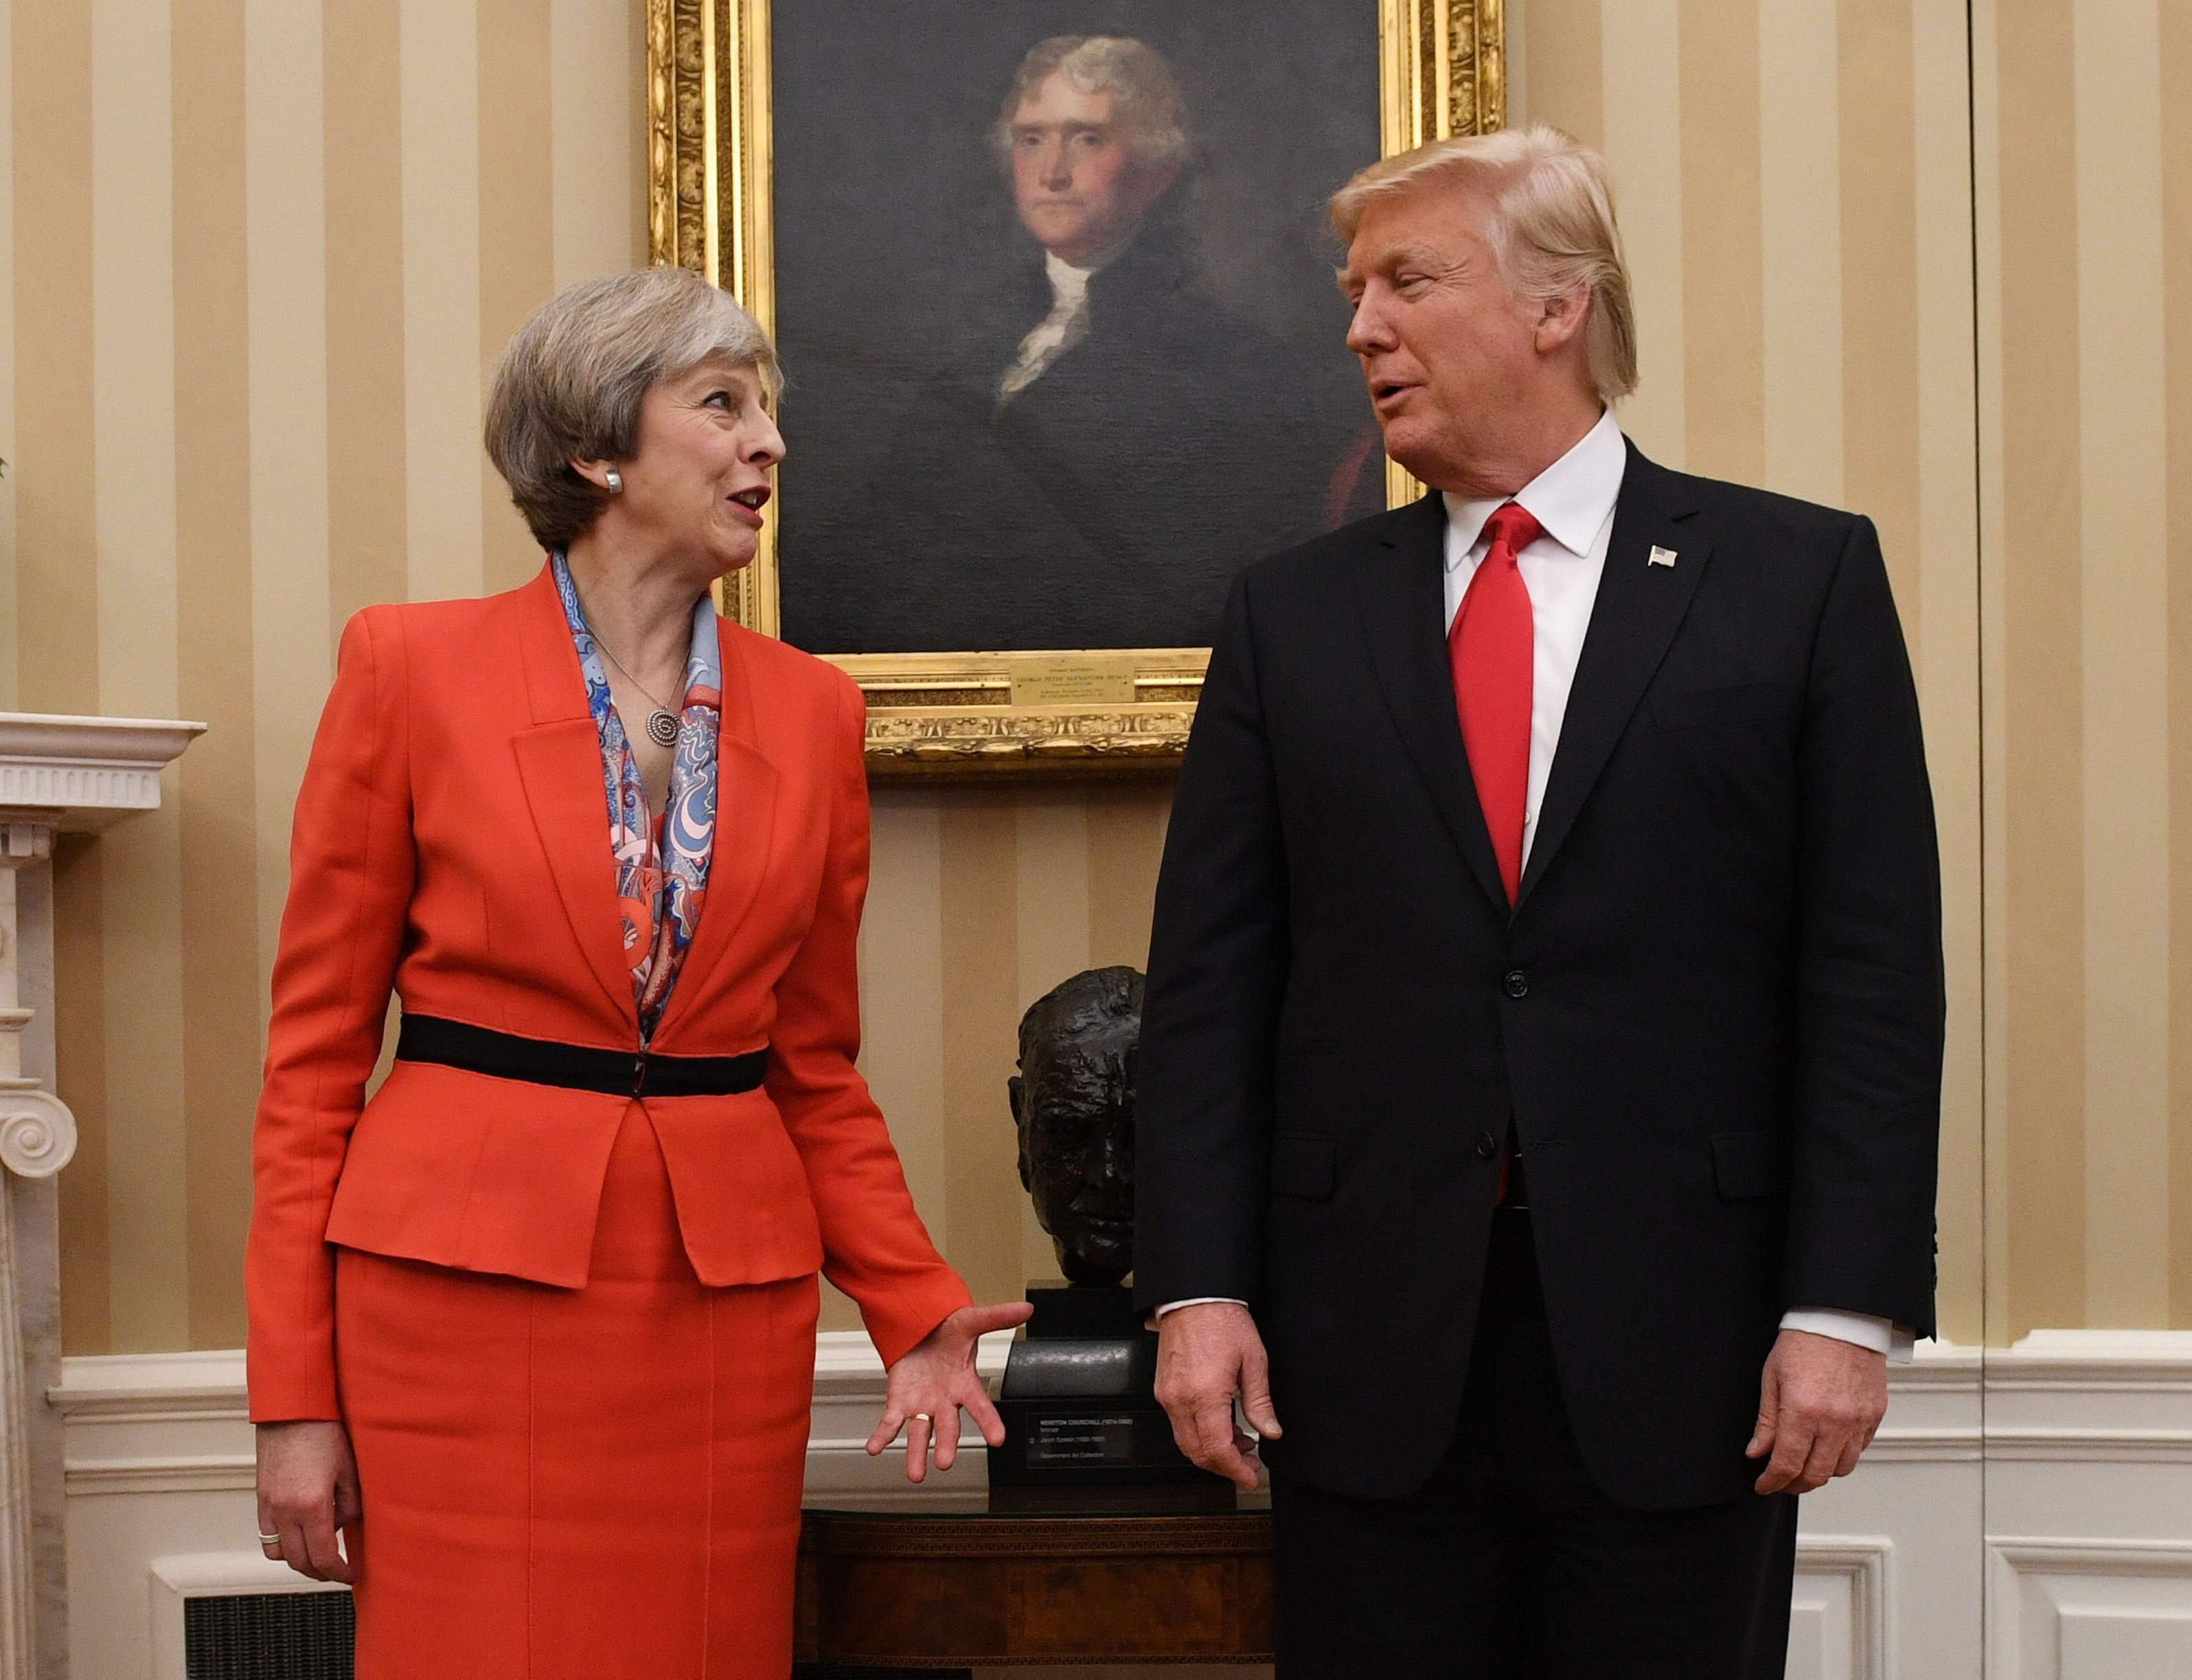 President Trump's British trip 'downgraded from state visit in face of opposition'